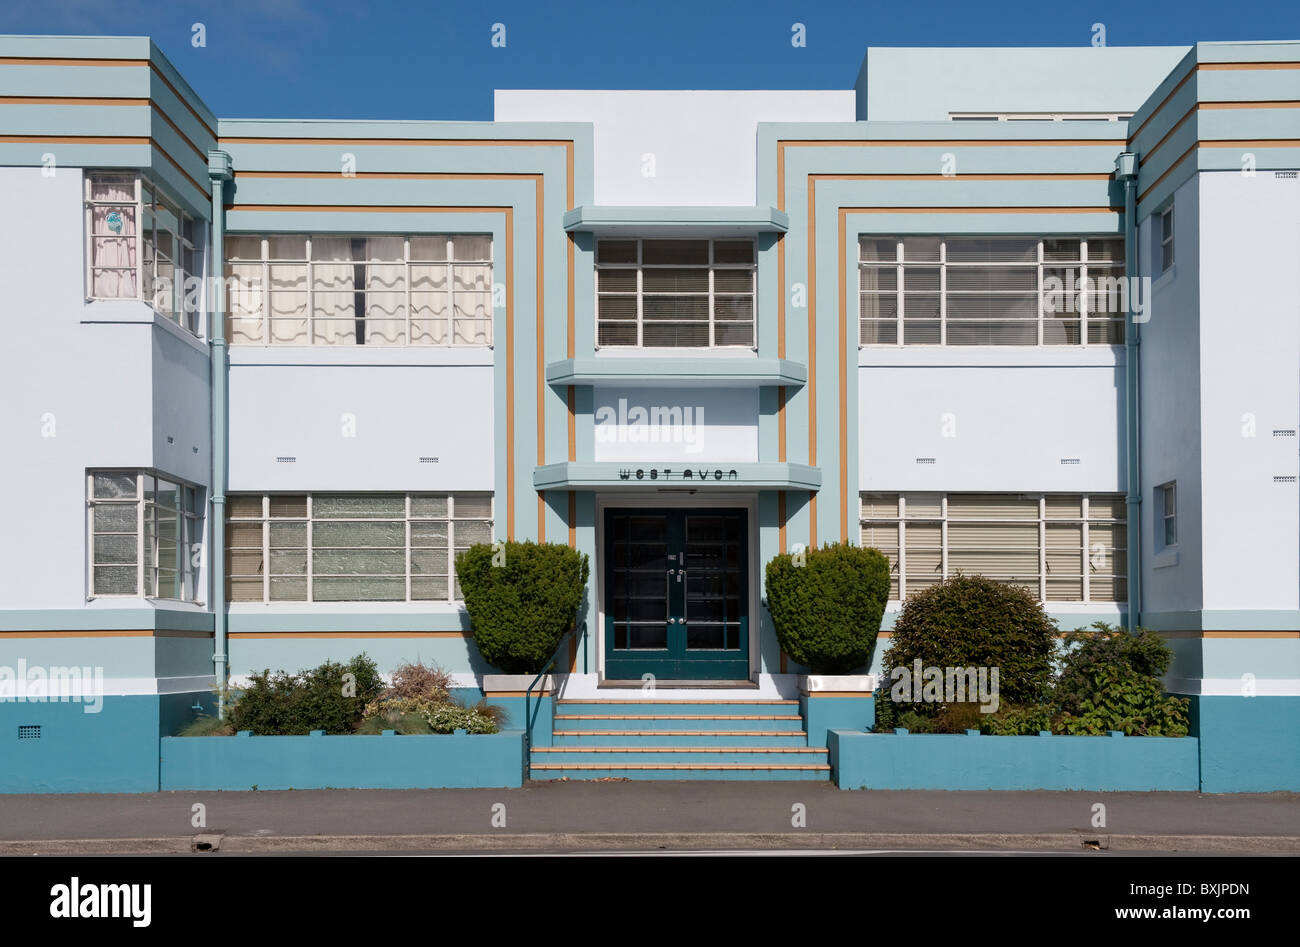 39 west avon 39 art deco apartment block on the corner of. Black Bedroom Furniture Sets. Home Design Ideas